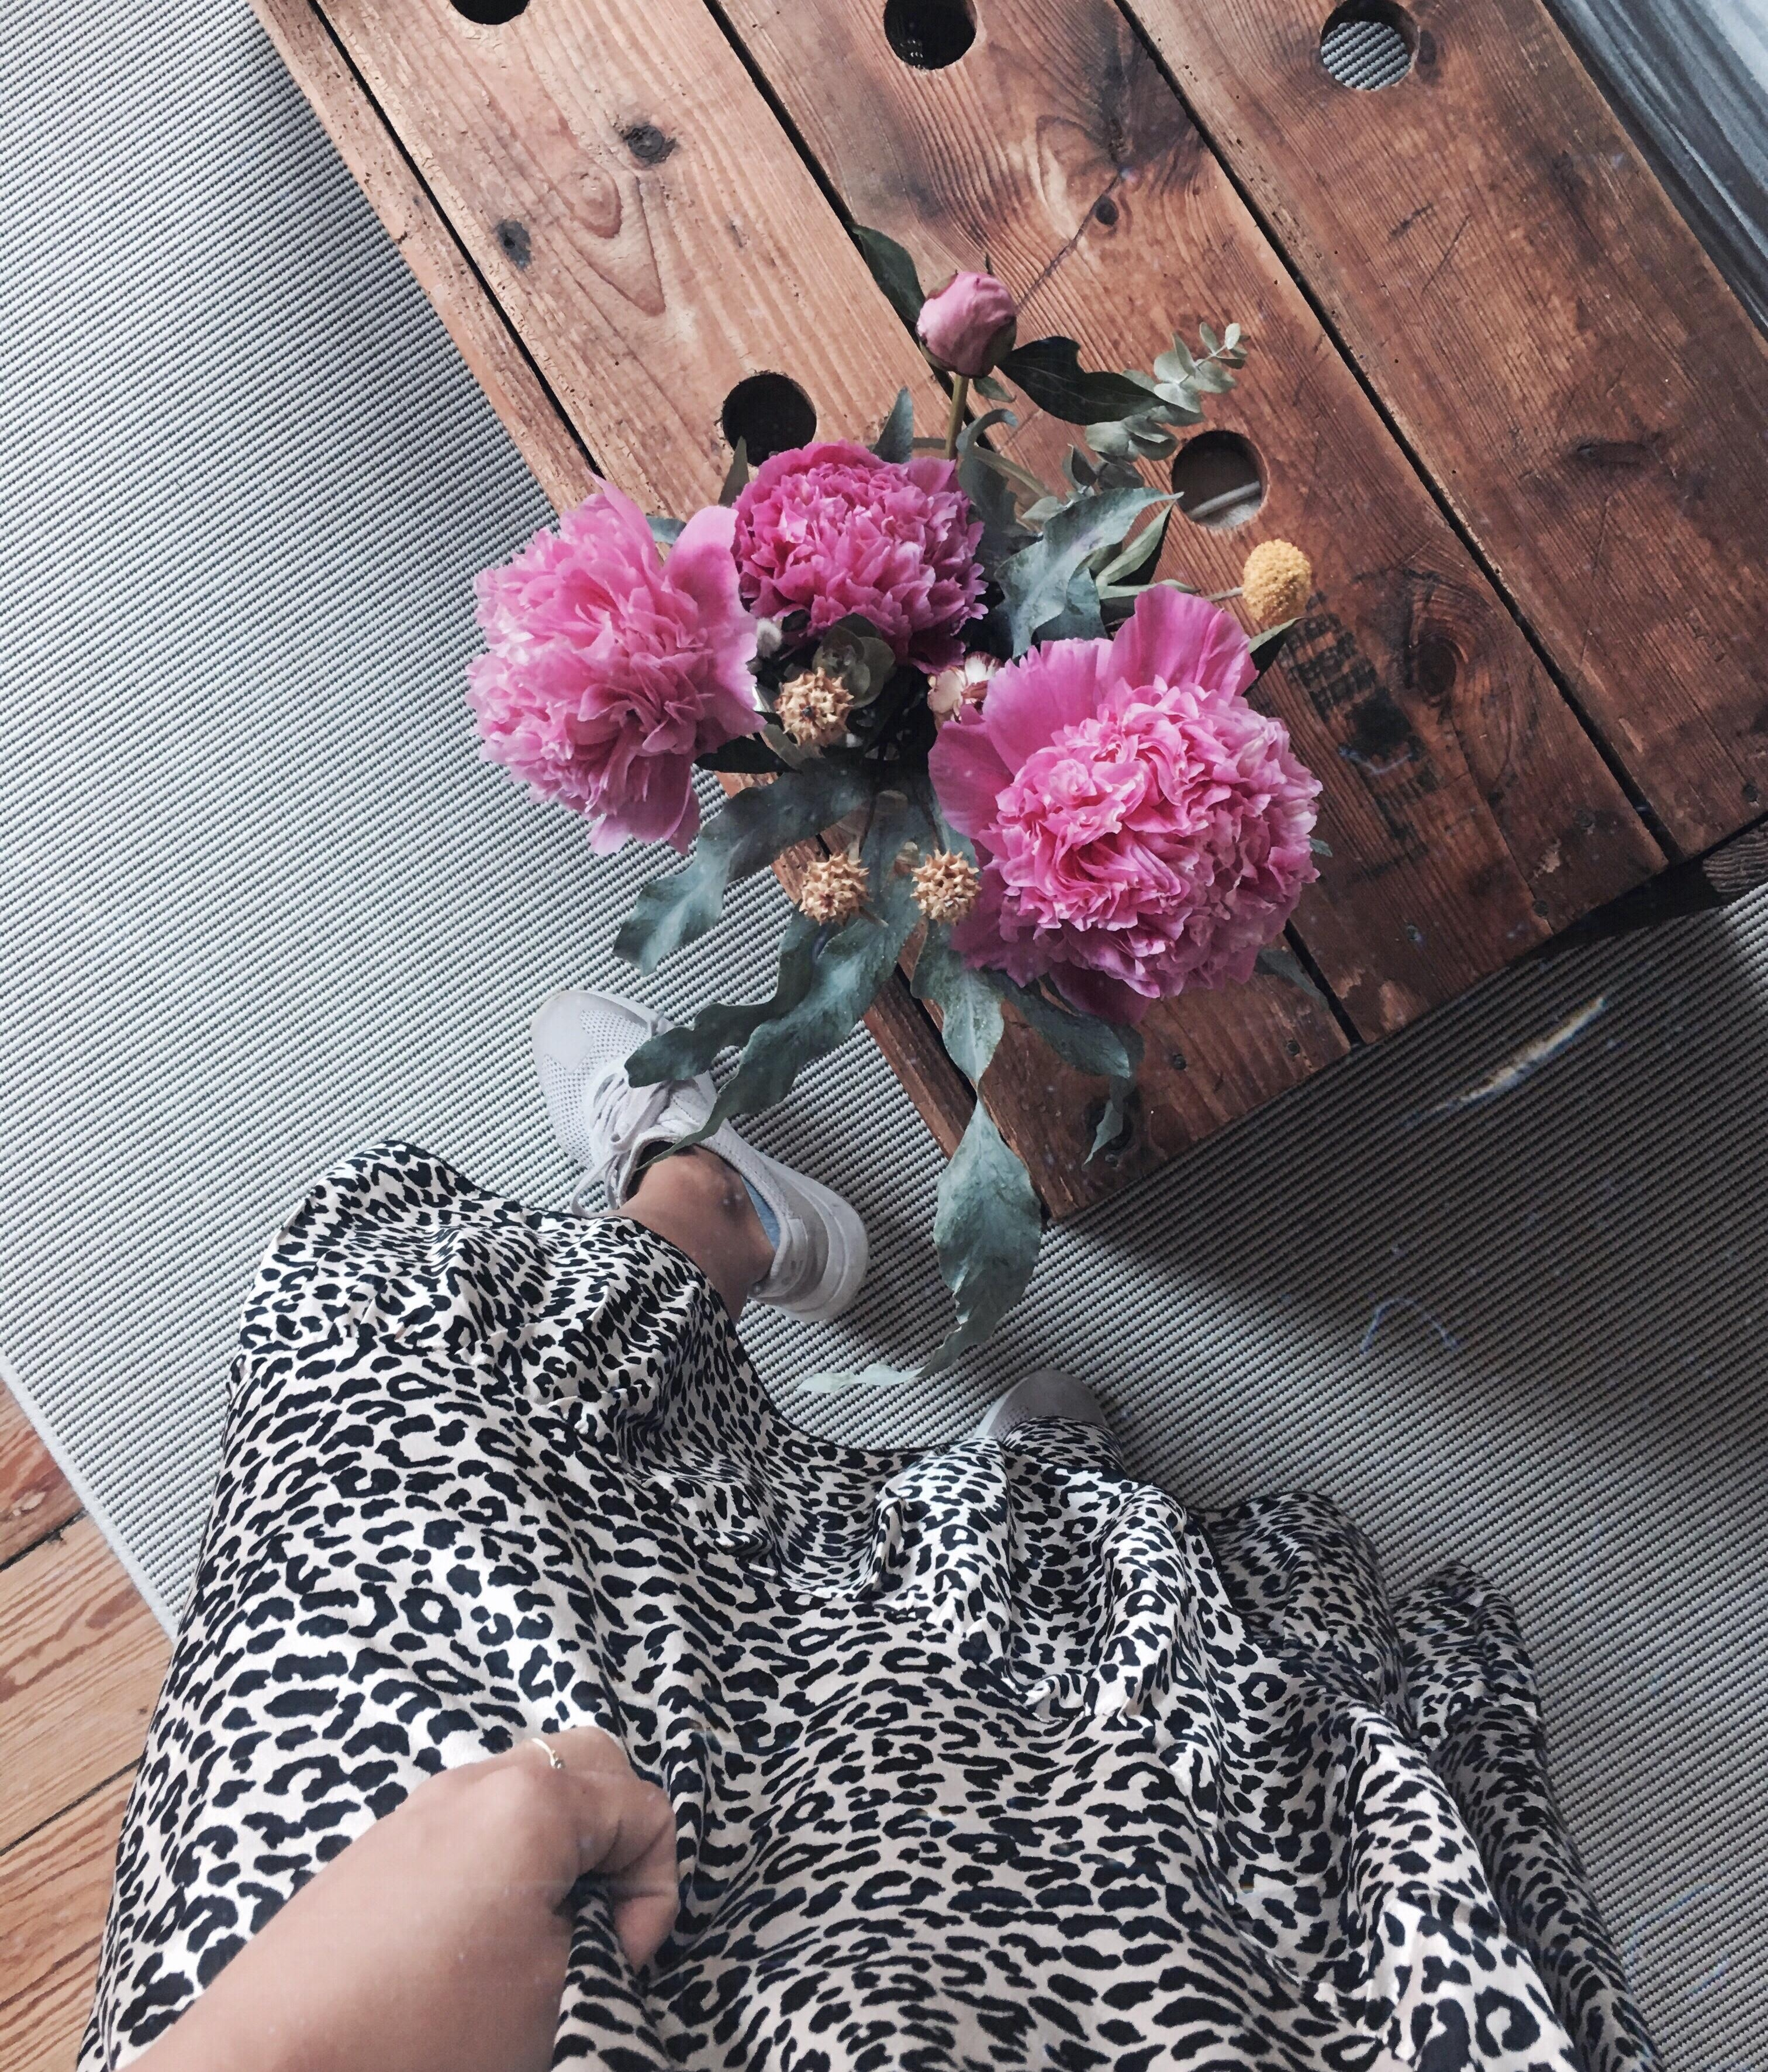 Leolove 🐆 #leoprint #flowers